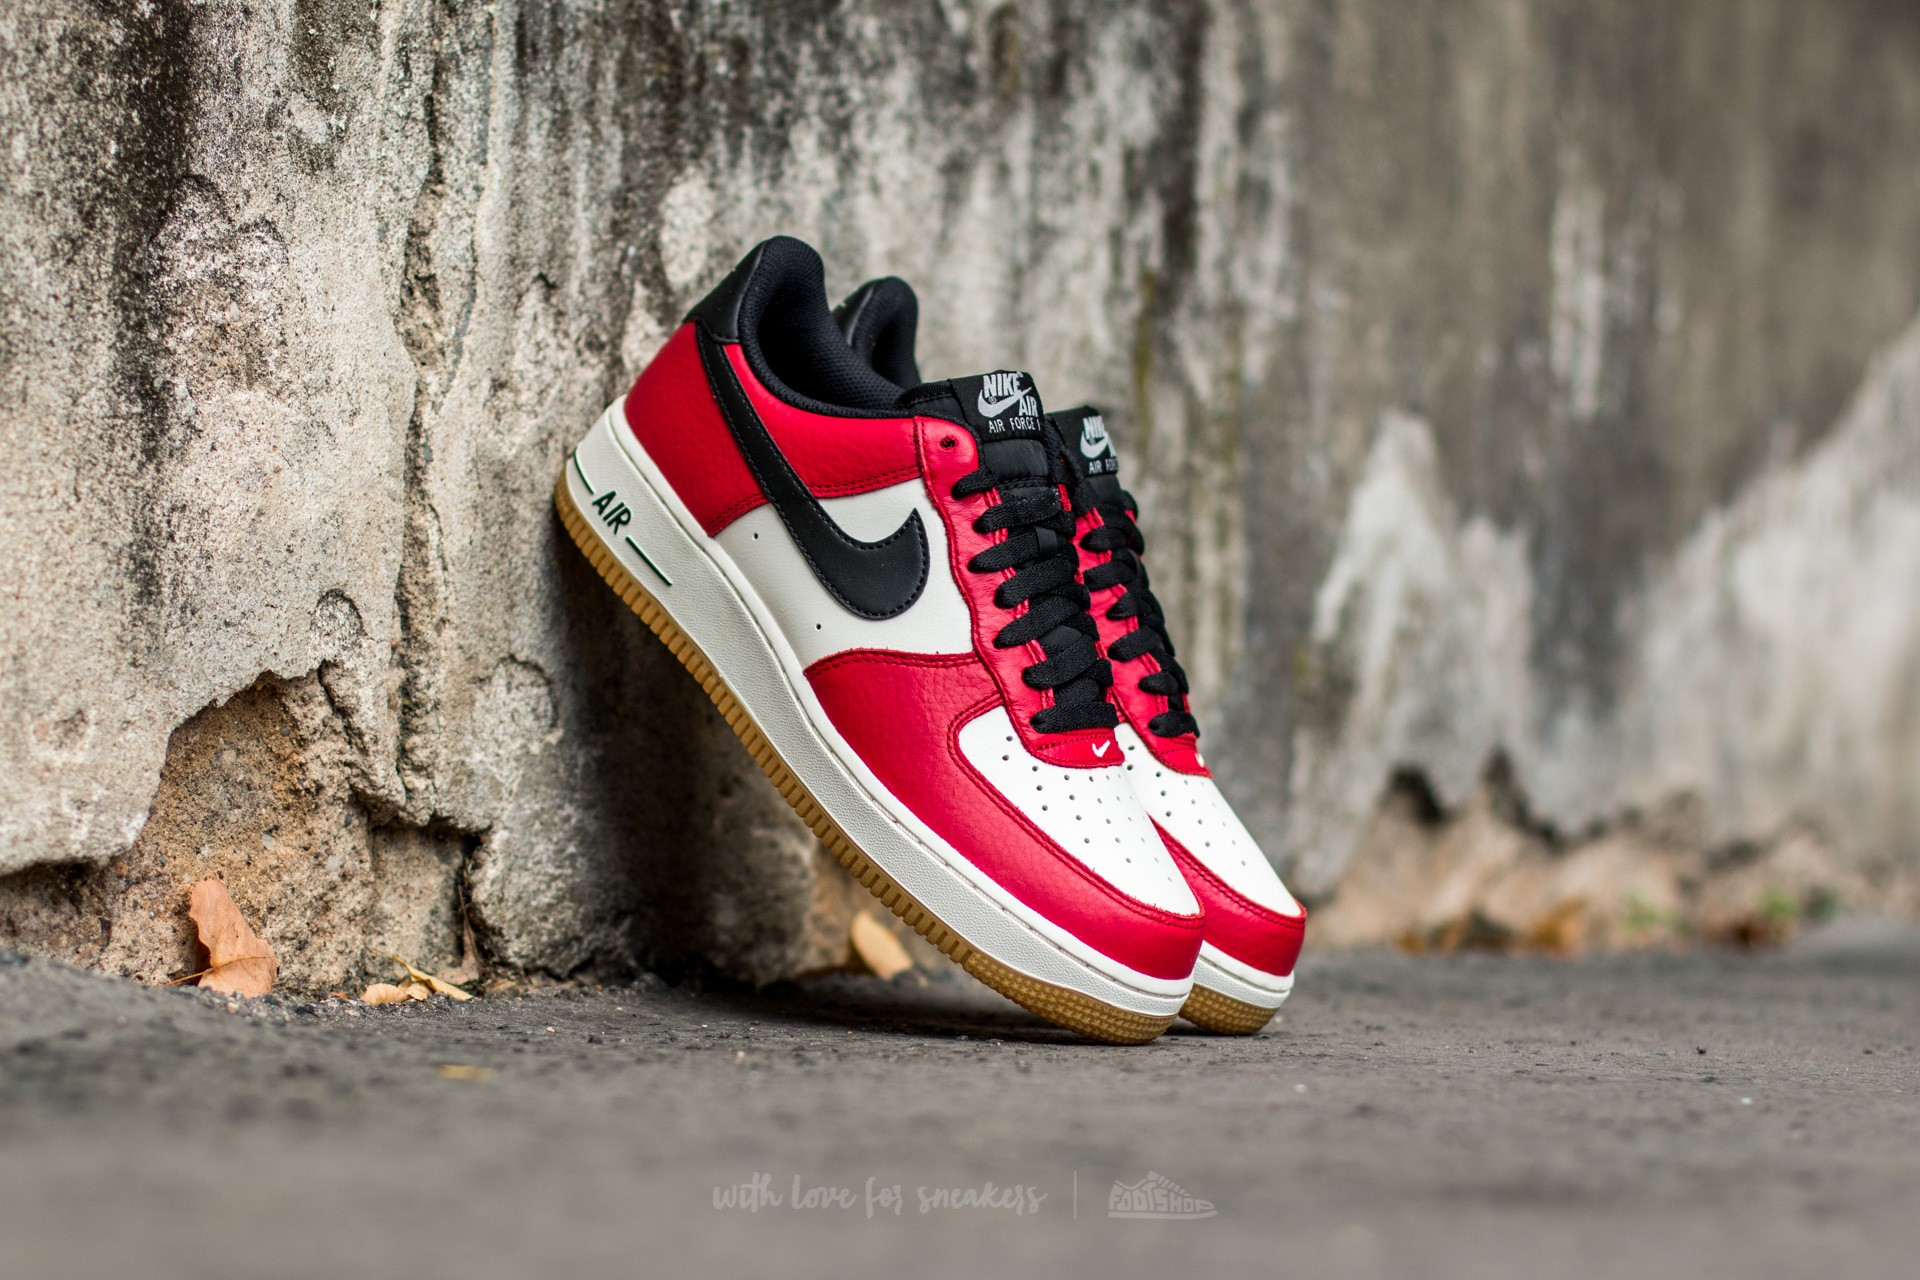 Nike Air Force 1 Low Gym Red